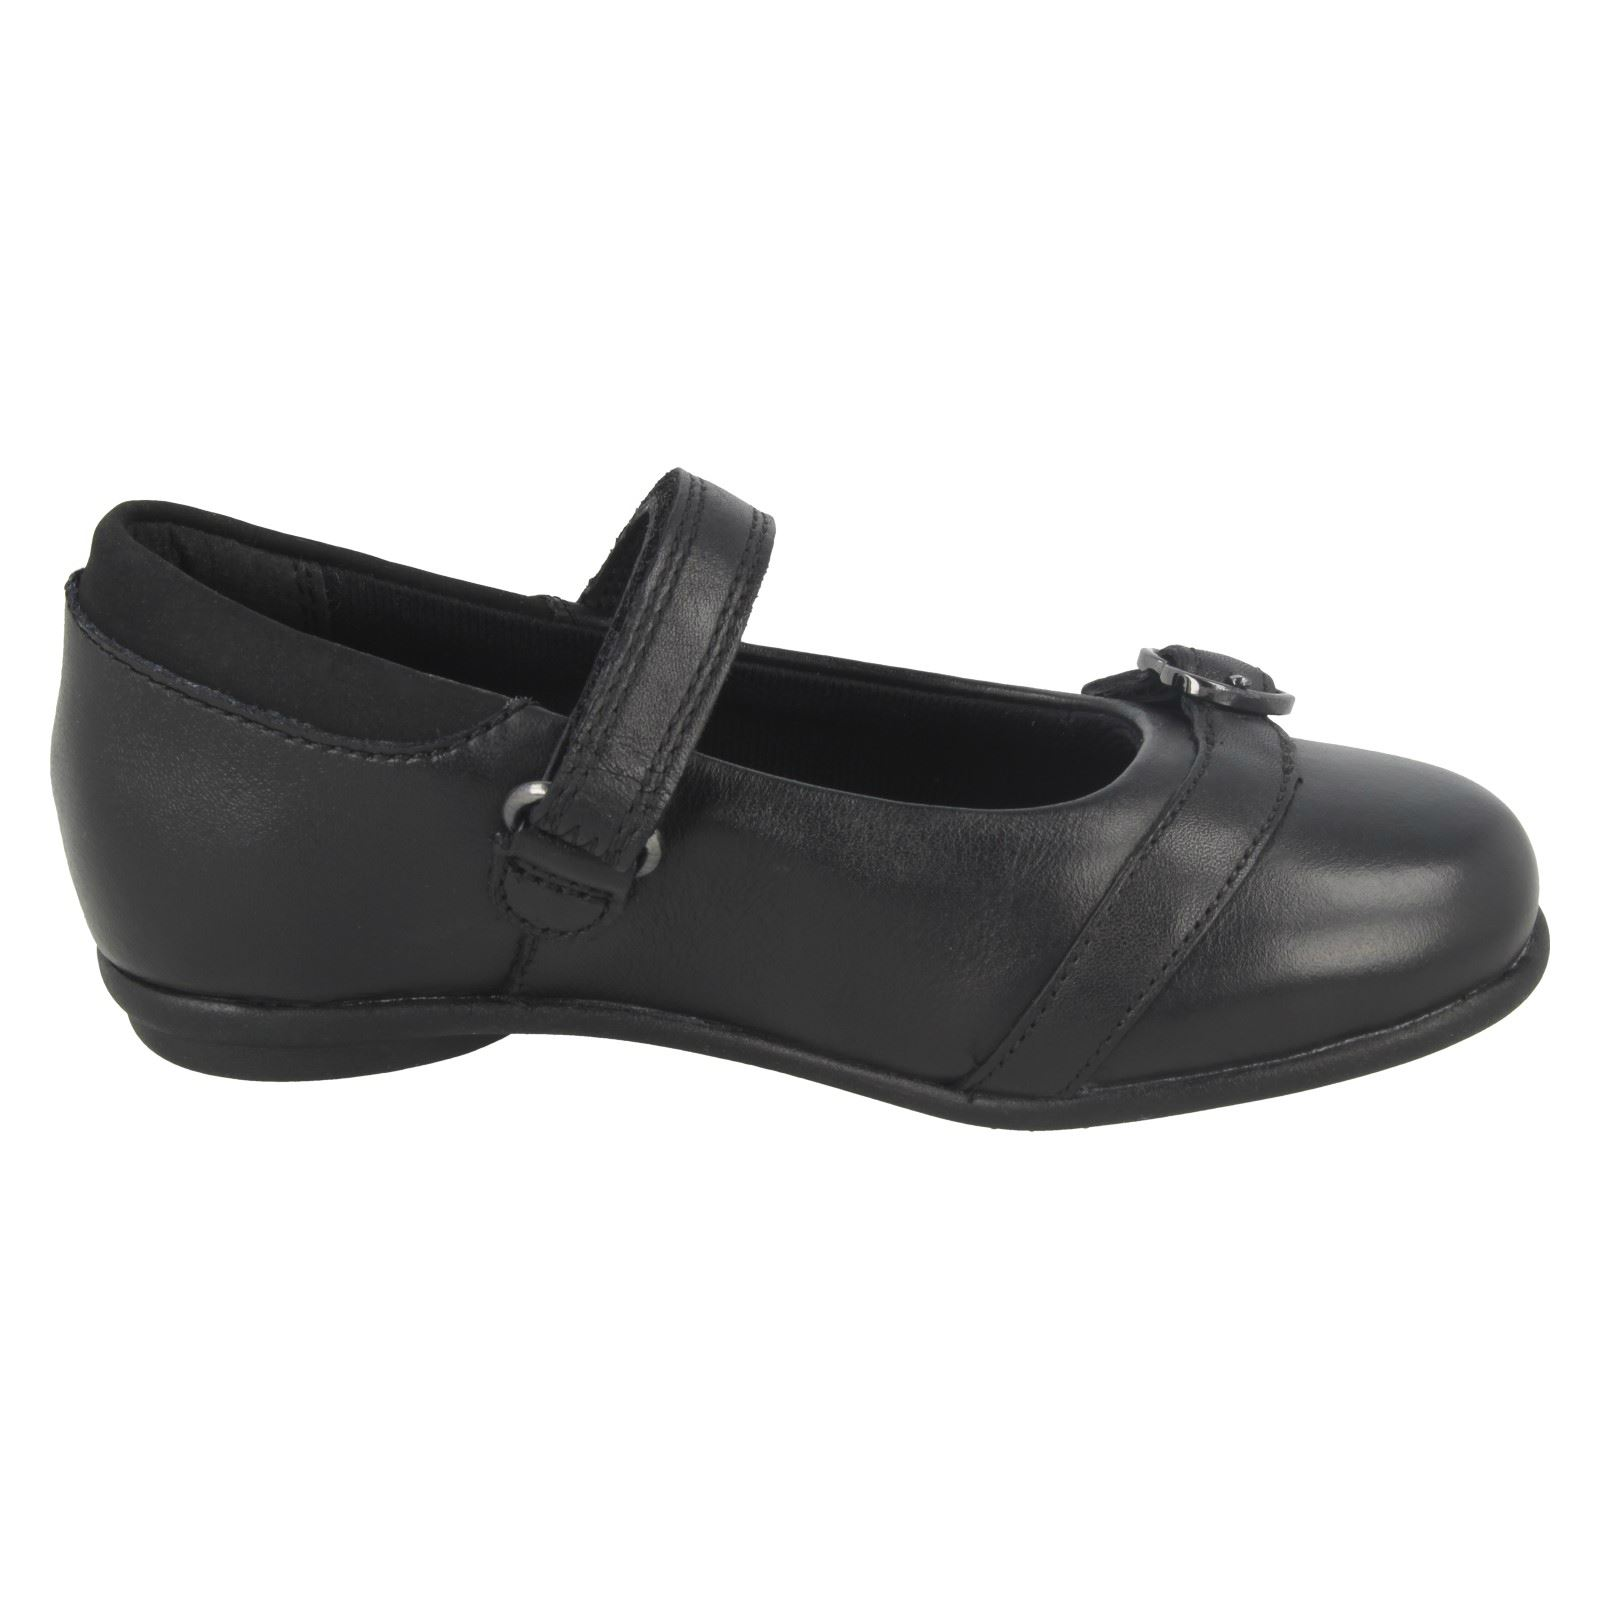 Girls Clarks Mary Jane Style Hook & Loop Heart Buckle School Shoes Tasha Bay